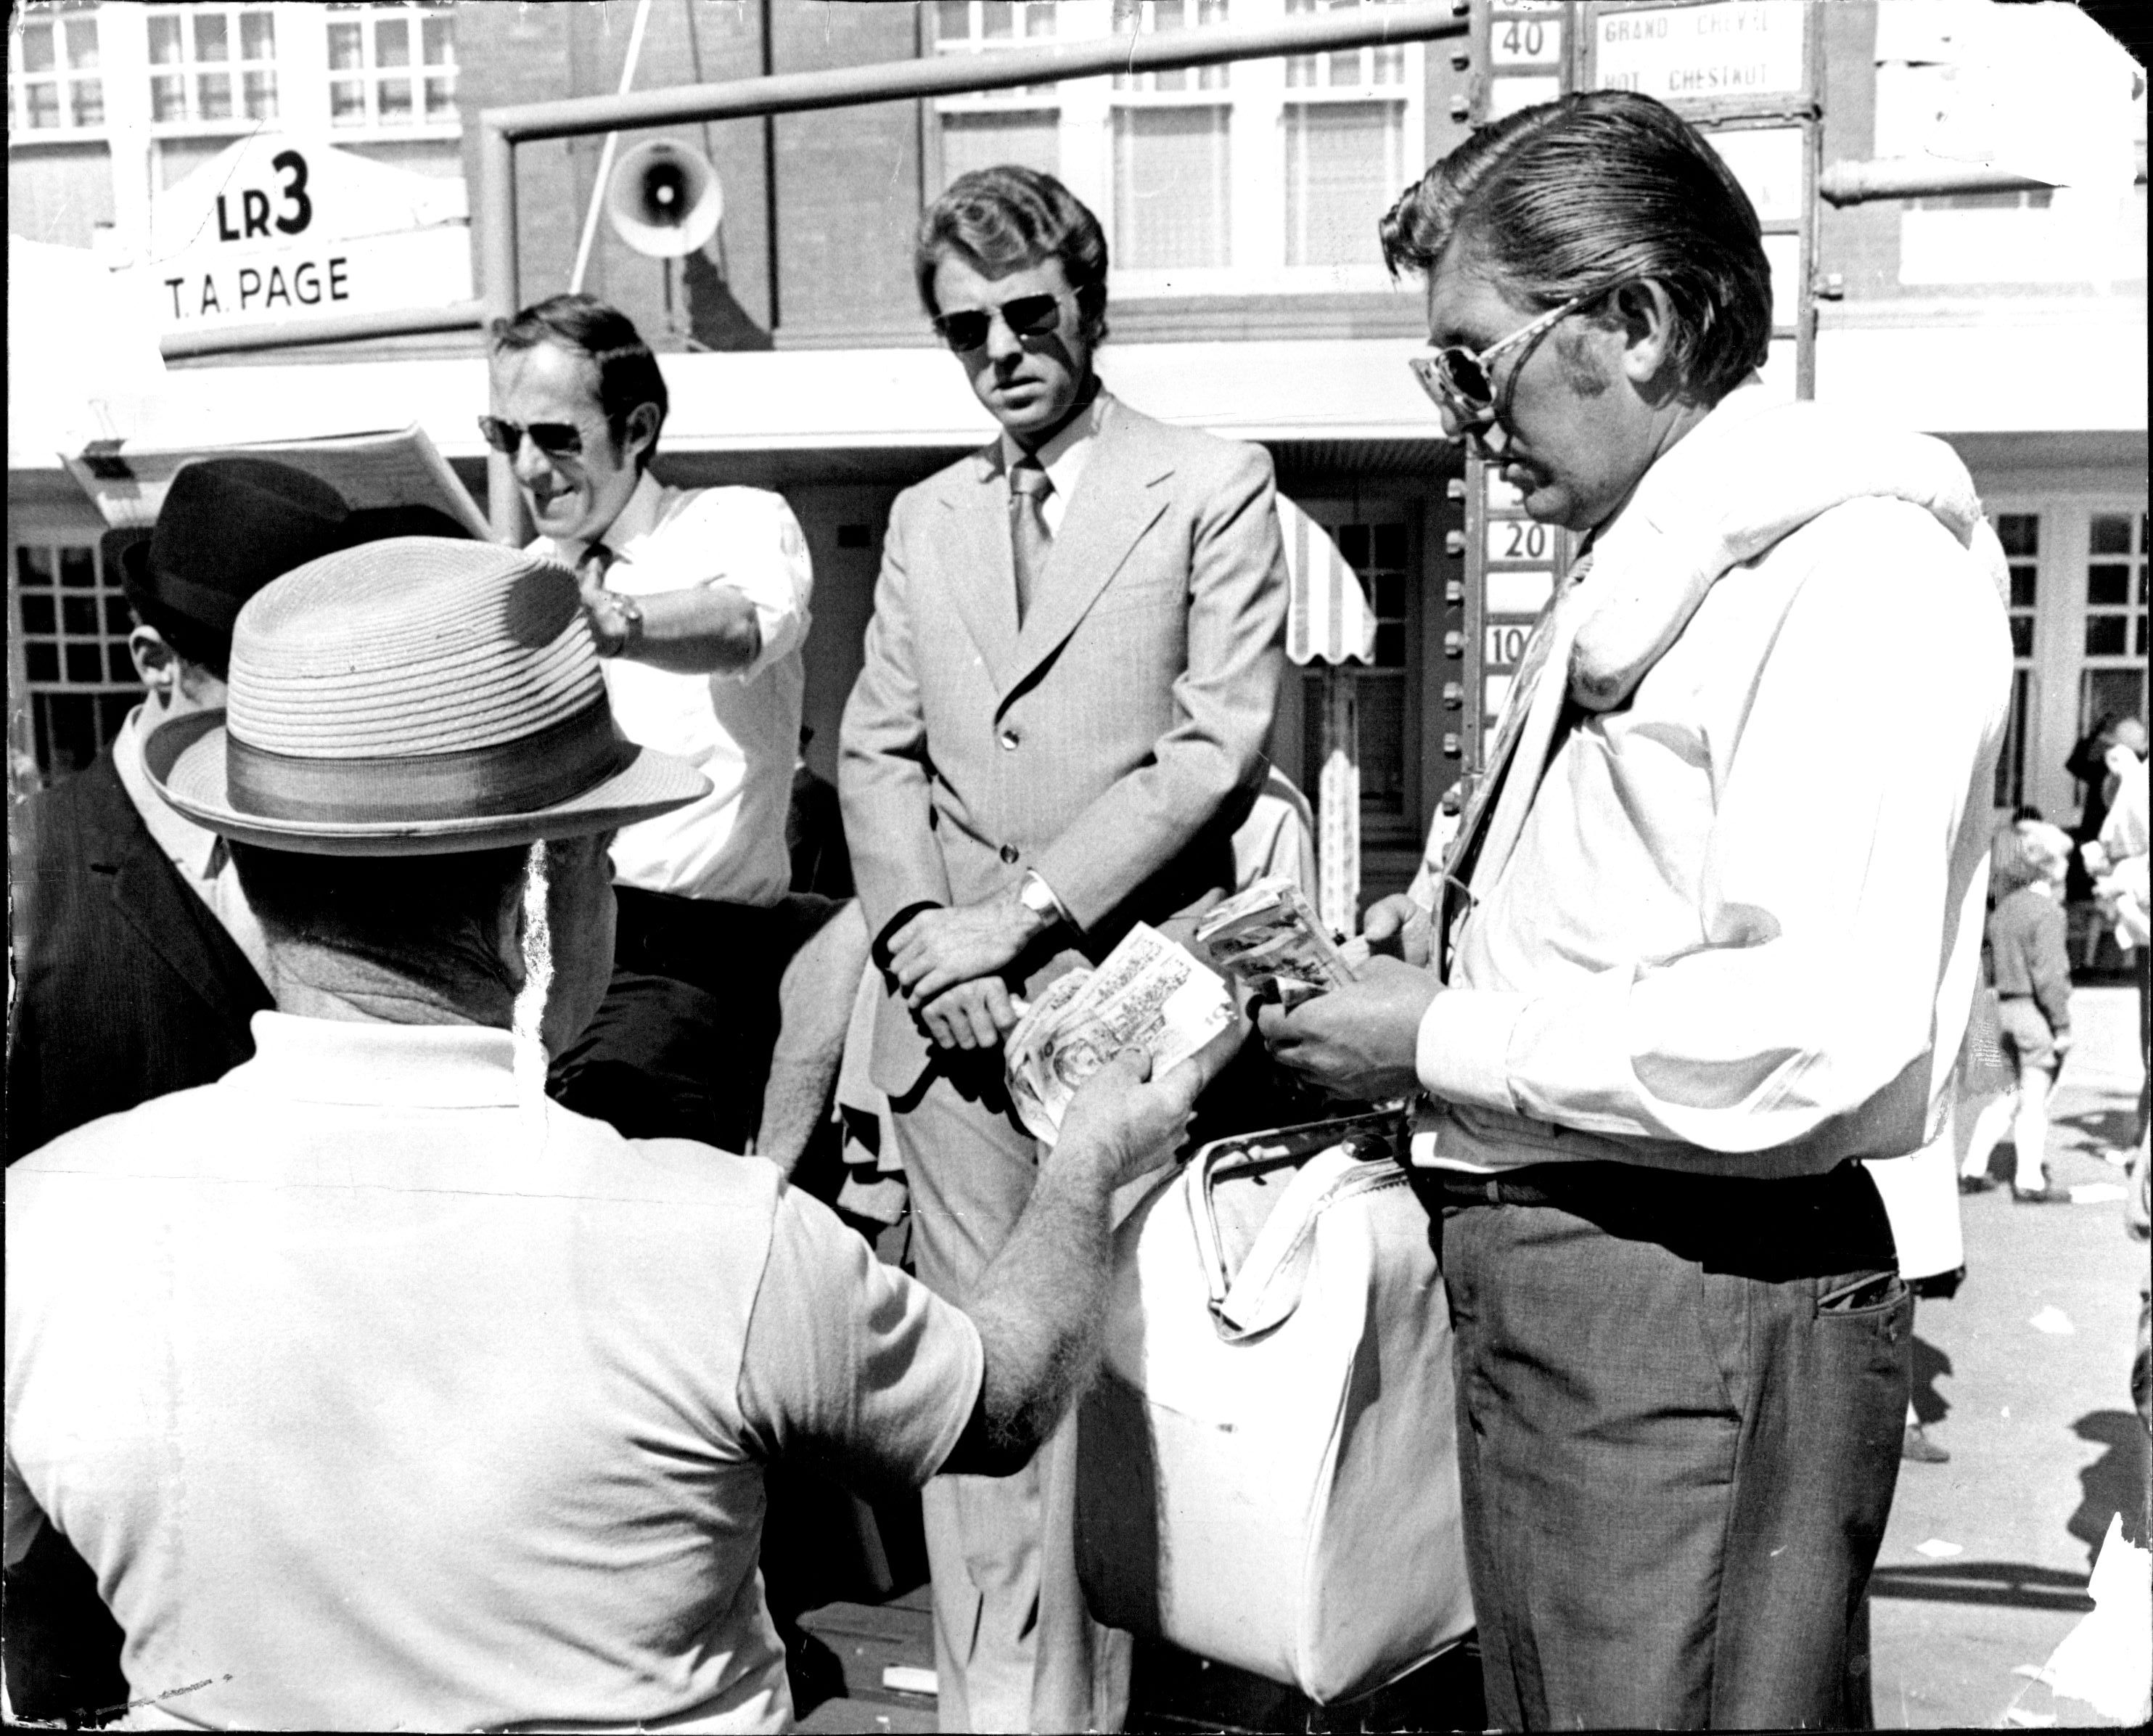 """Bookmaker Terry """"Mister Money"""" Page (centre) looks on as a punter moves in to make a bet with his bagman.To Go With Special Bookmaking Series For Sun Special - Punters shown laying odds with bookmakers at Randwick Racecourse this afternoon."""